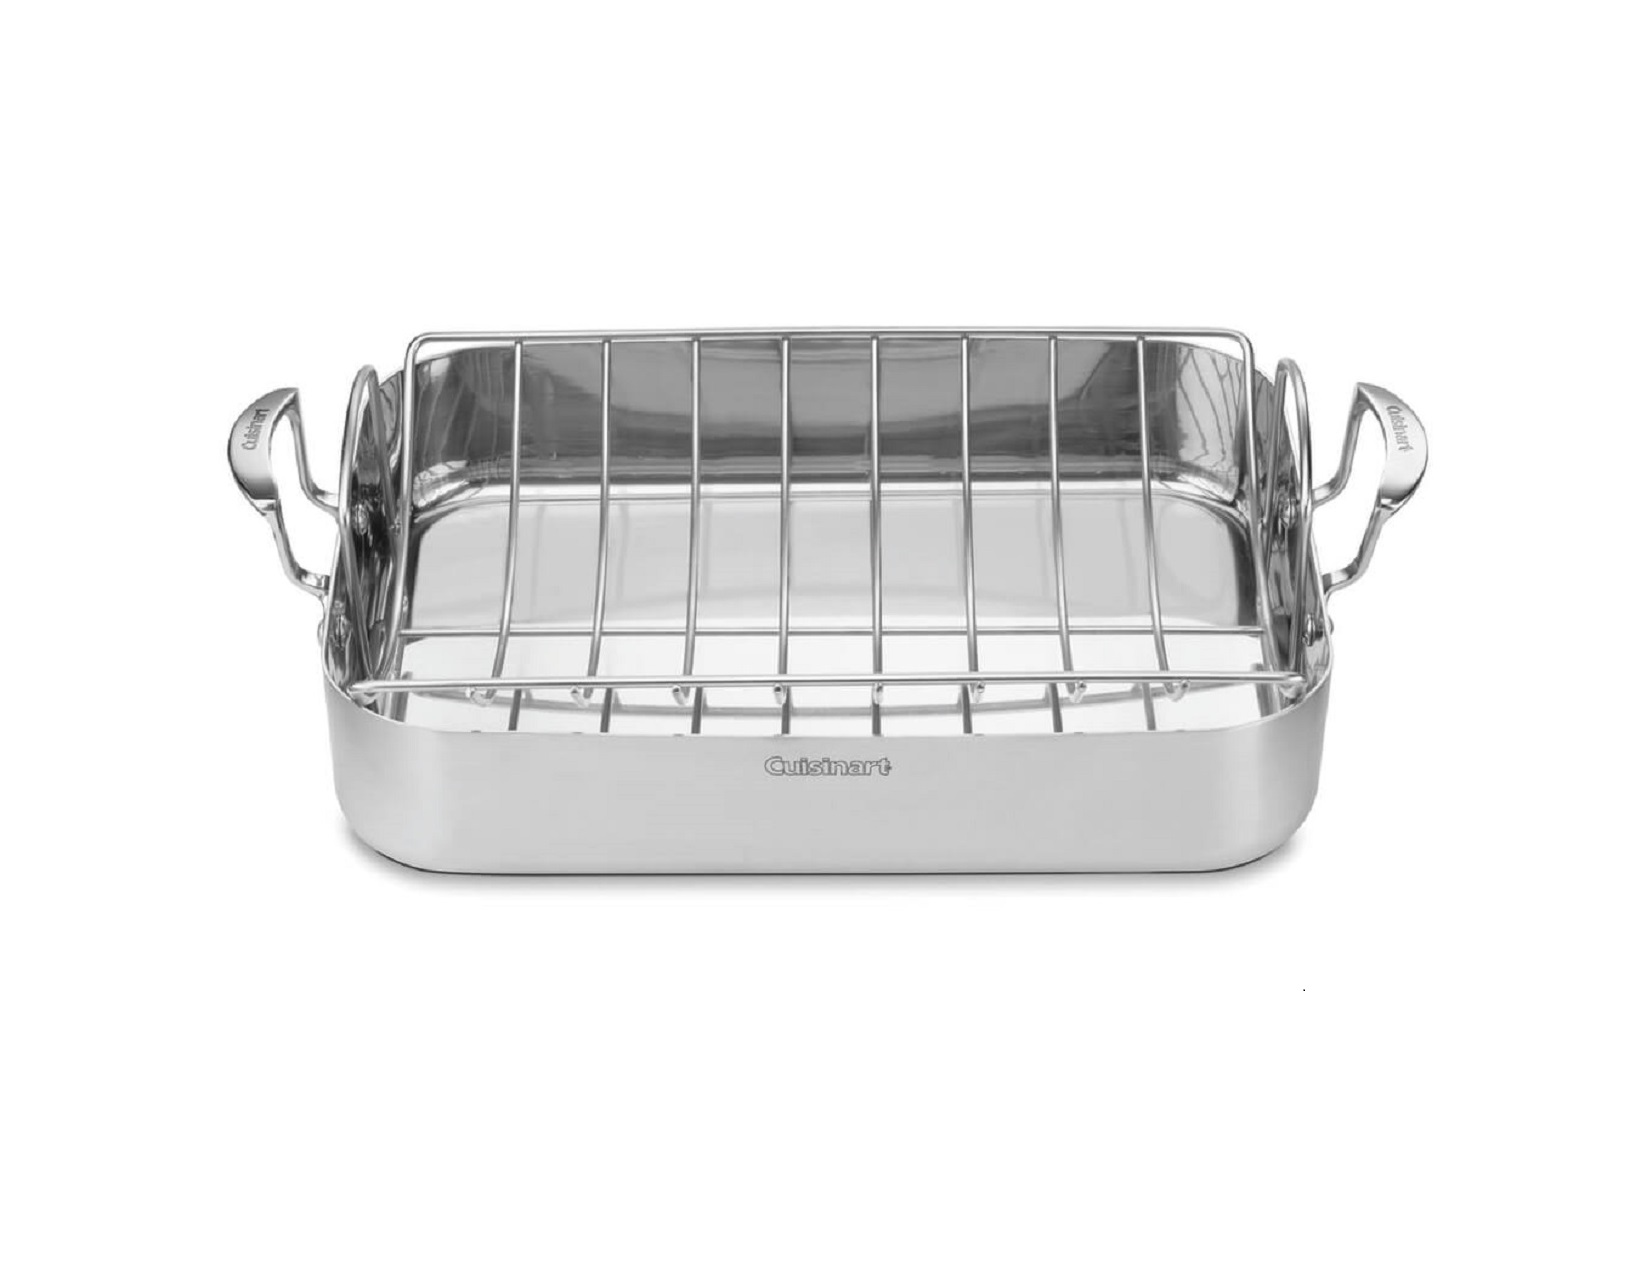 "MultiClad Pro Triple Ply Stainless Cookware 16"" Roasting Pan with Rack"